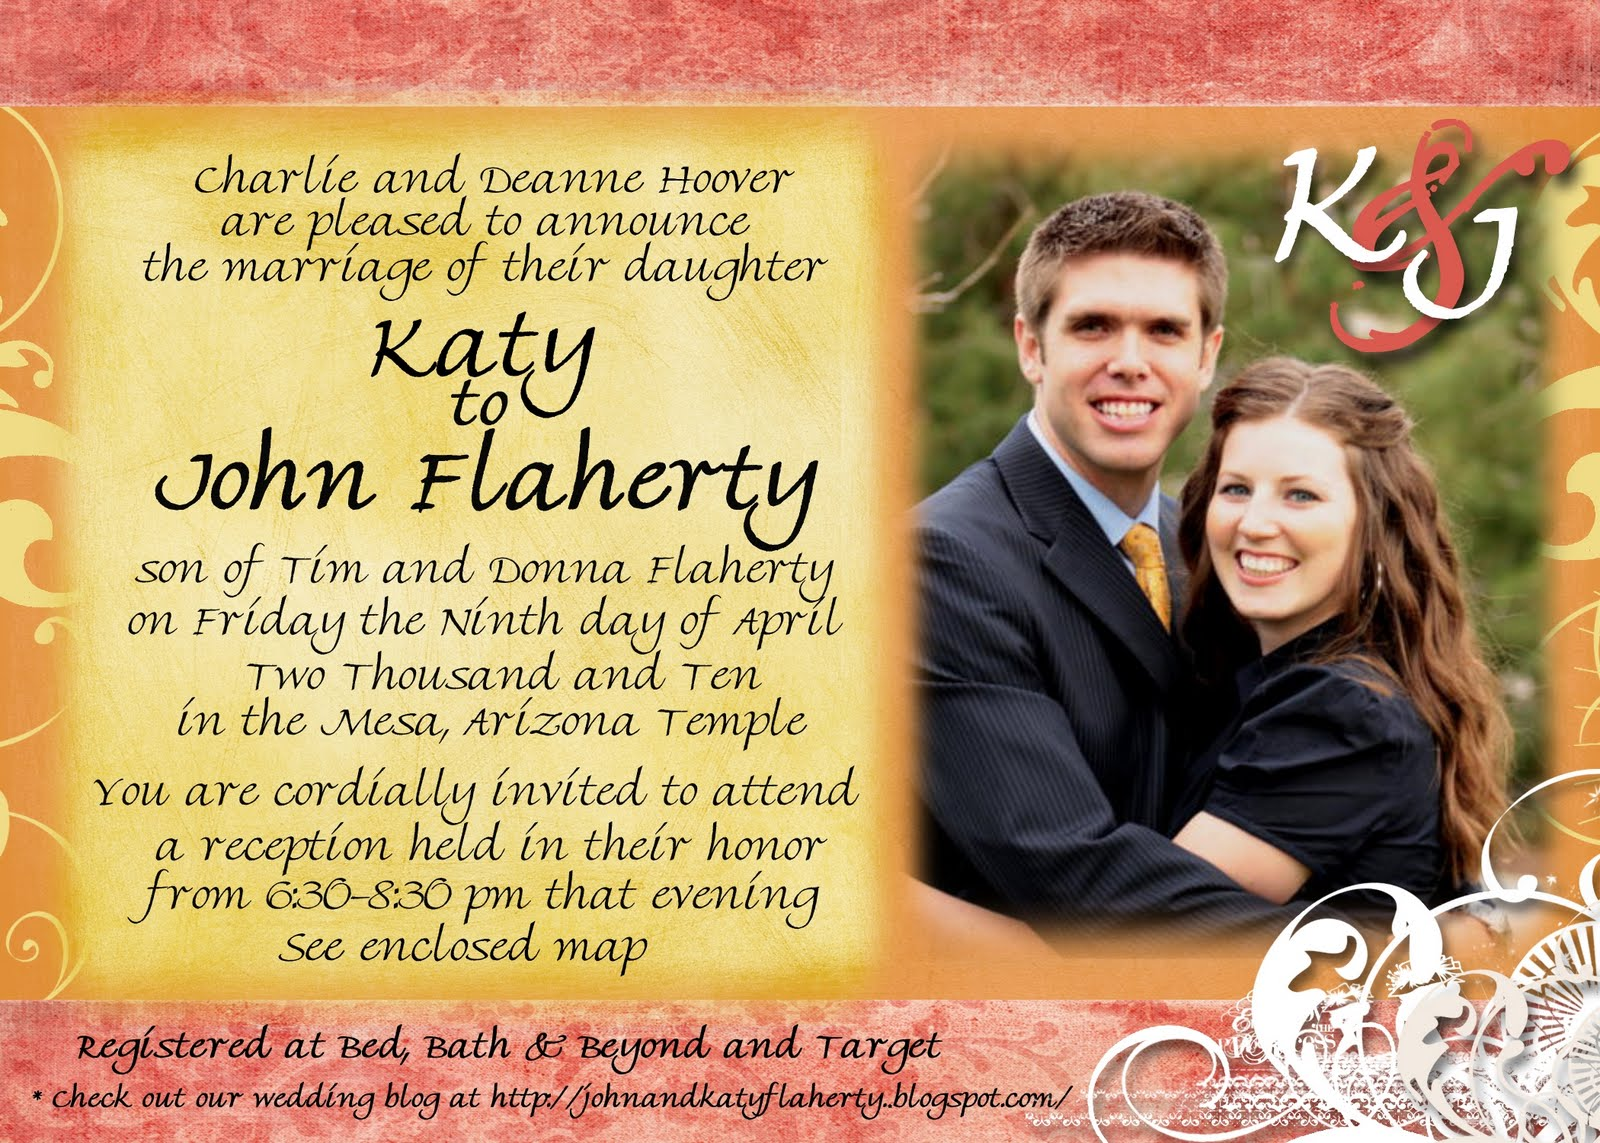 John and katy wedding announcement wedding announcement monicamarmolfo Image collections